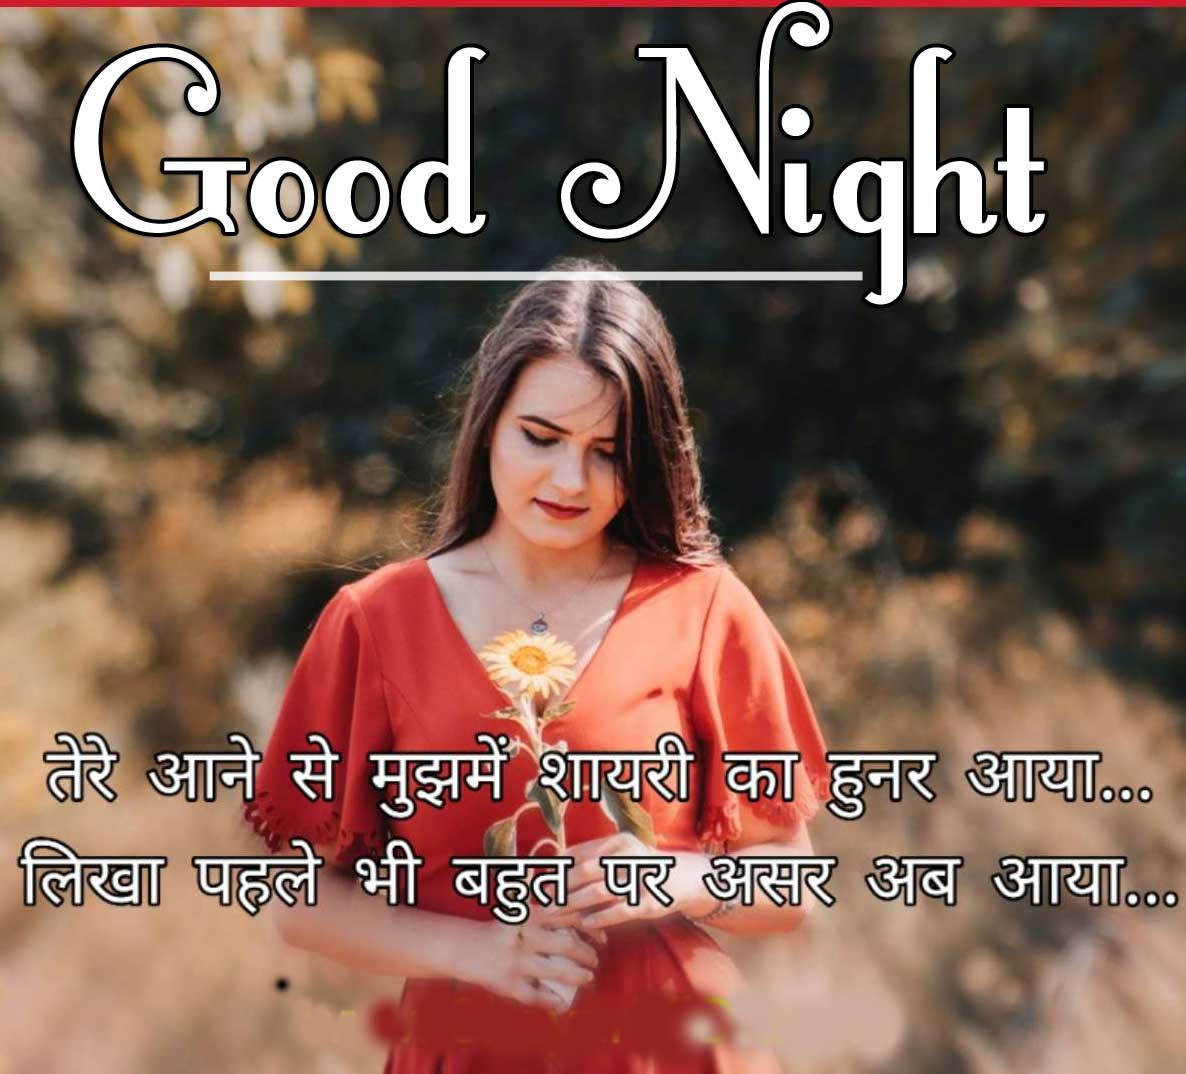 Good Night Images With Hindi Shayari 35